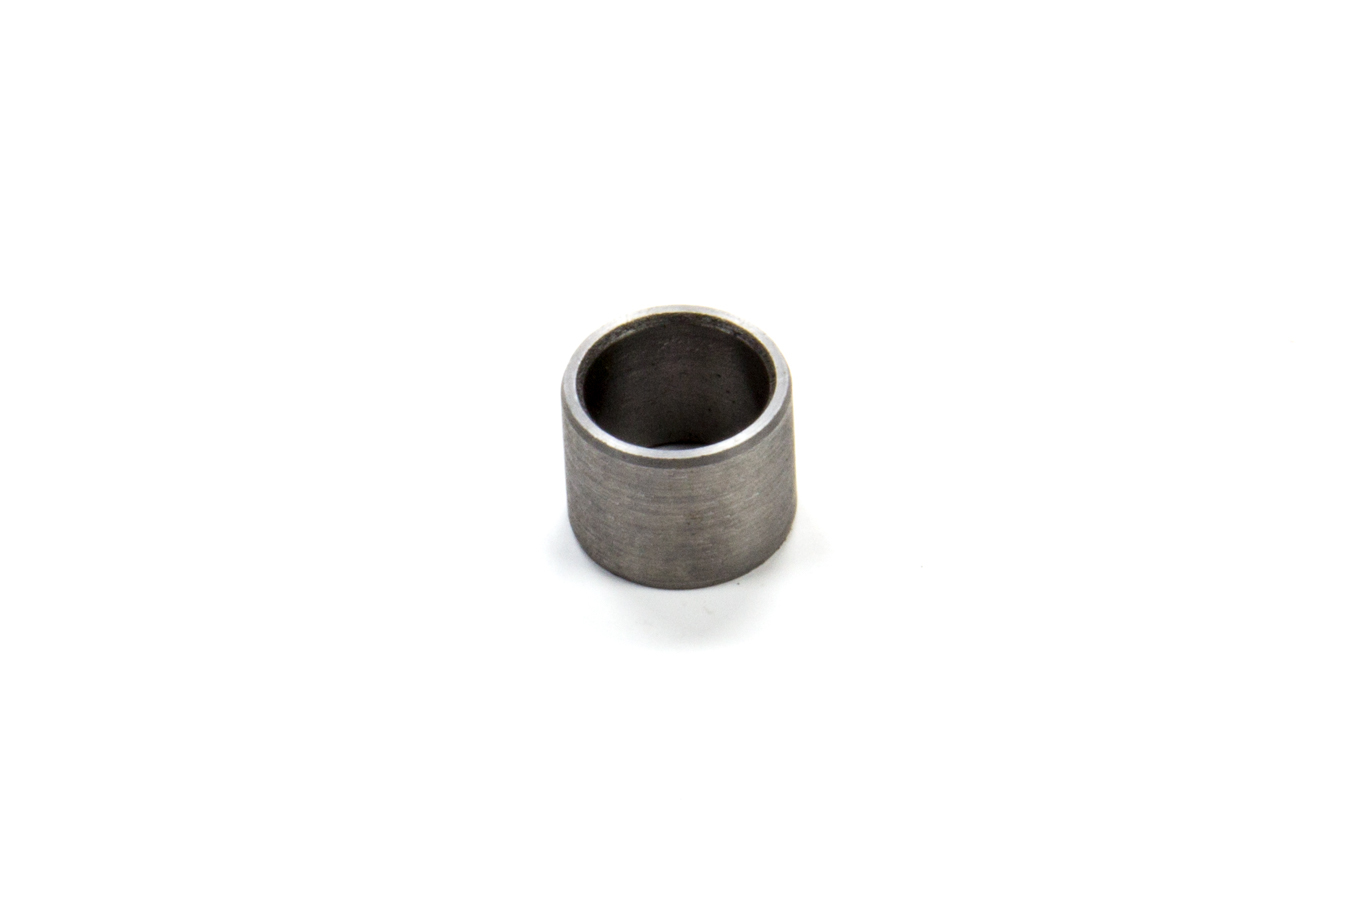 Dura-Bond AD-326 Cylinder Head Dowels, Hollow, Steel, Natural, GM LS-Series, Each